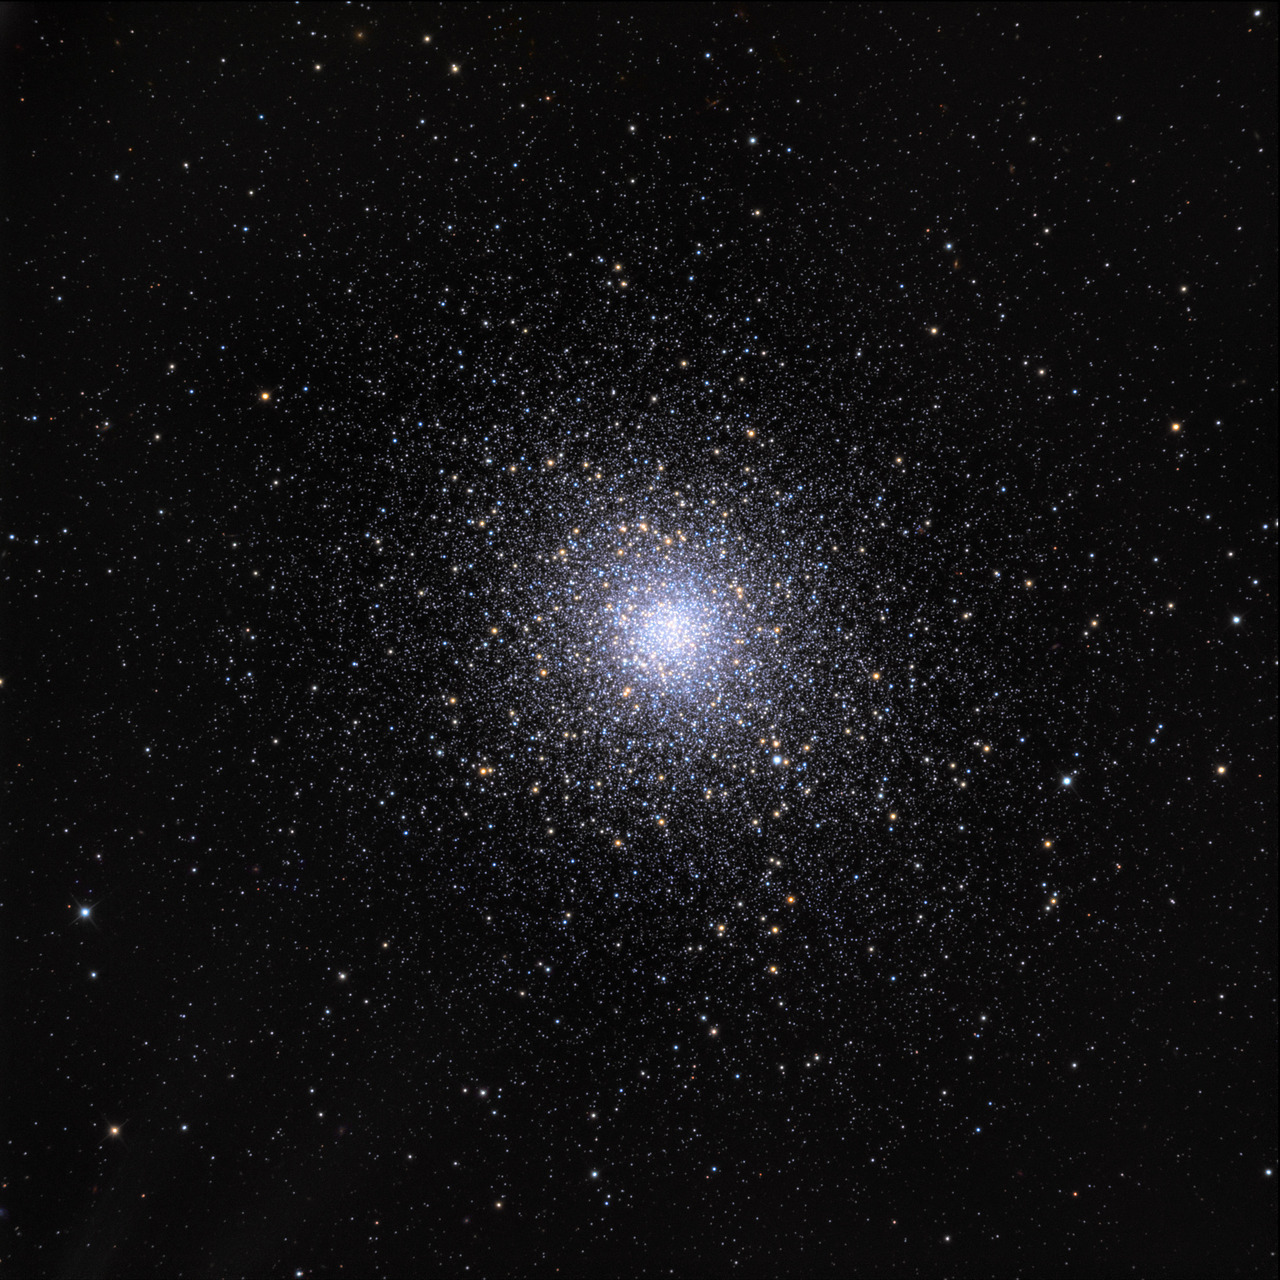 "the-eldest-woman-on:   Messier 5  Image Credit & Copyright: Adam Block, Mt. Lemmon SkyCenter, University of Arizona ""Beautiful Nebula discovered between the Balance [Libra] & the Serpent [Serpens] …"" begins the description of the 5th entry in 18th century astronomer Charles Messier's famous catalog of nebulae and star clusters. Though it appeared to Messier to be fuzzy and round and without stars, Messier 5 (M5) is now known to be a globular star cluster, 100,000 stars or more, bound by gravity and packed into a region around 165 light-years in diameter. It lies some 25,000 light-years away. Roaming the halo of our galaxy, globular star clusters are ancient members of the Milky Way. M5 is one of the oldest globulars, its stars estimated to be nearly 13 billion years old."